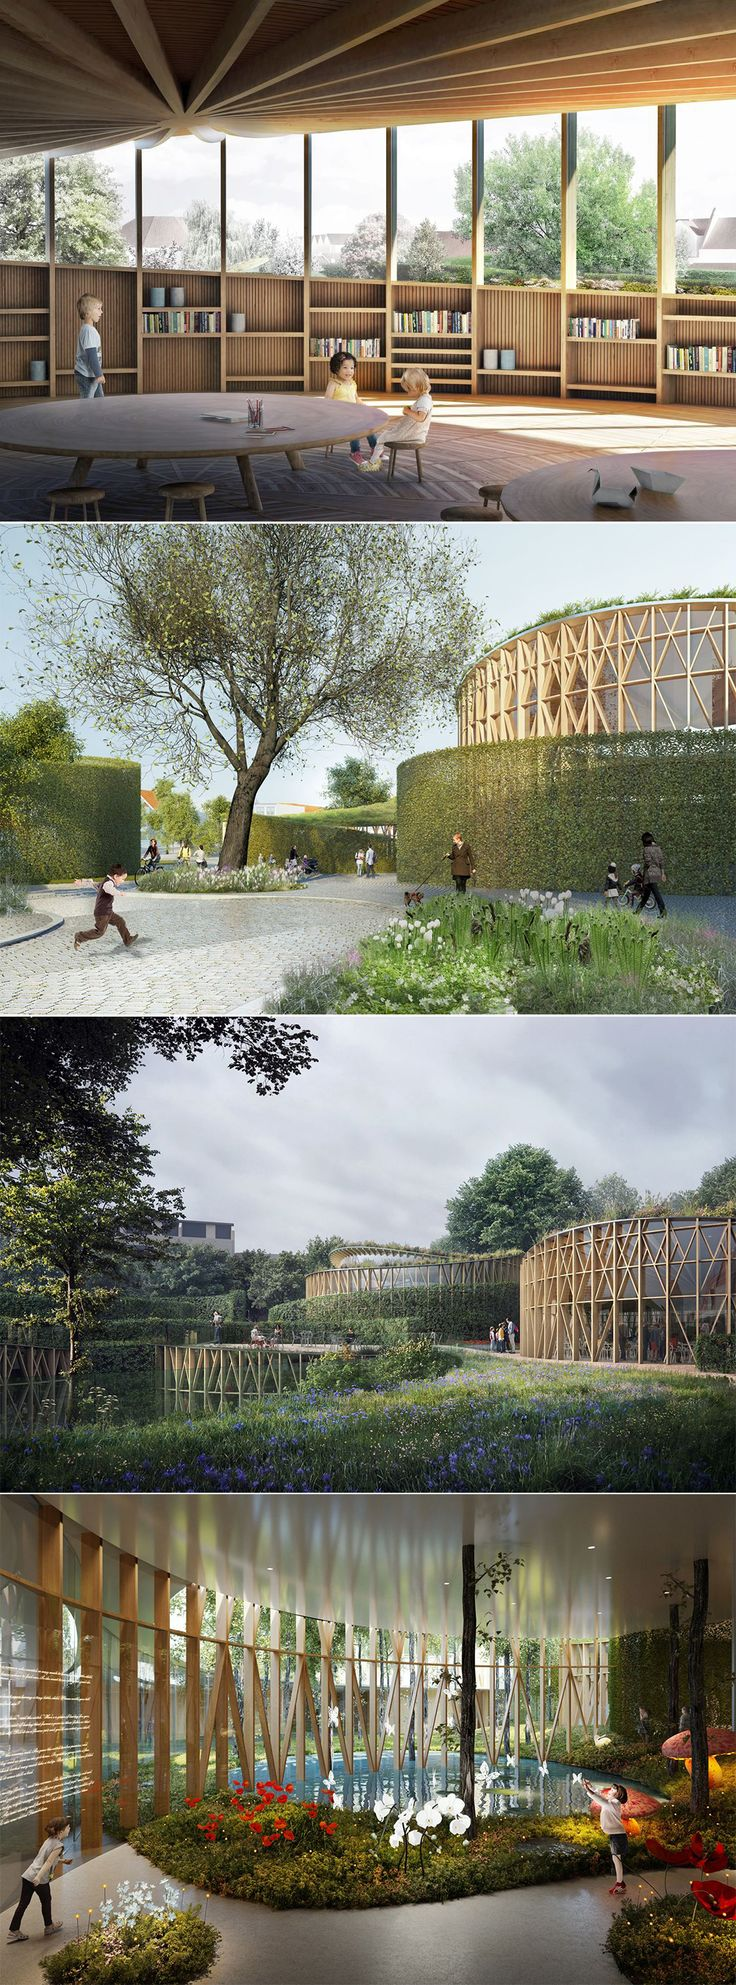 #KengoKuma won the contest to redesign #HansChristianAndersen #Museum centred on the world of #fairytales